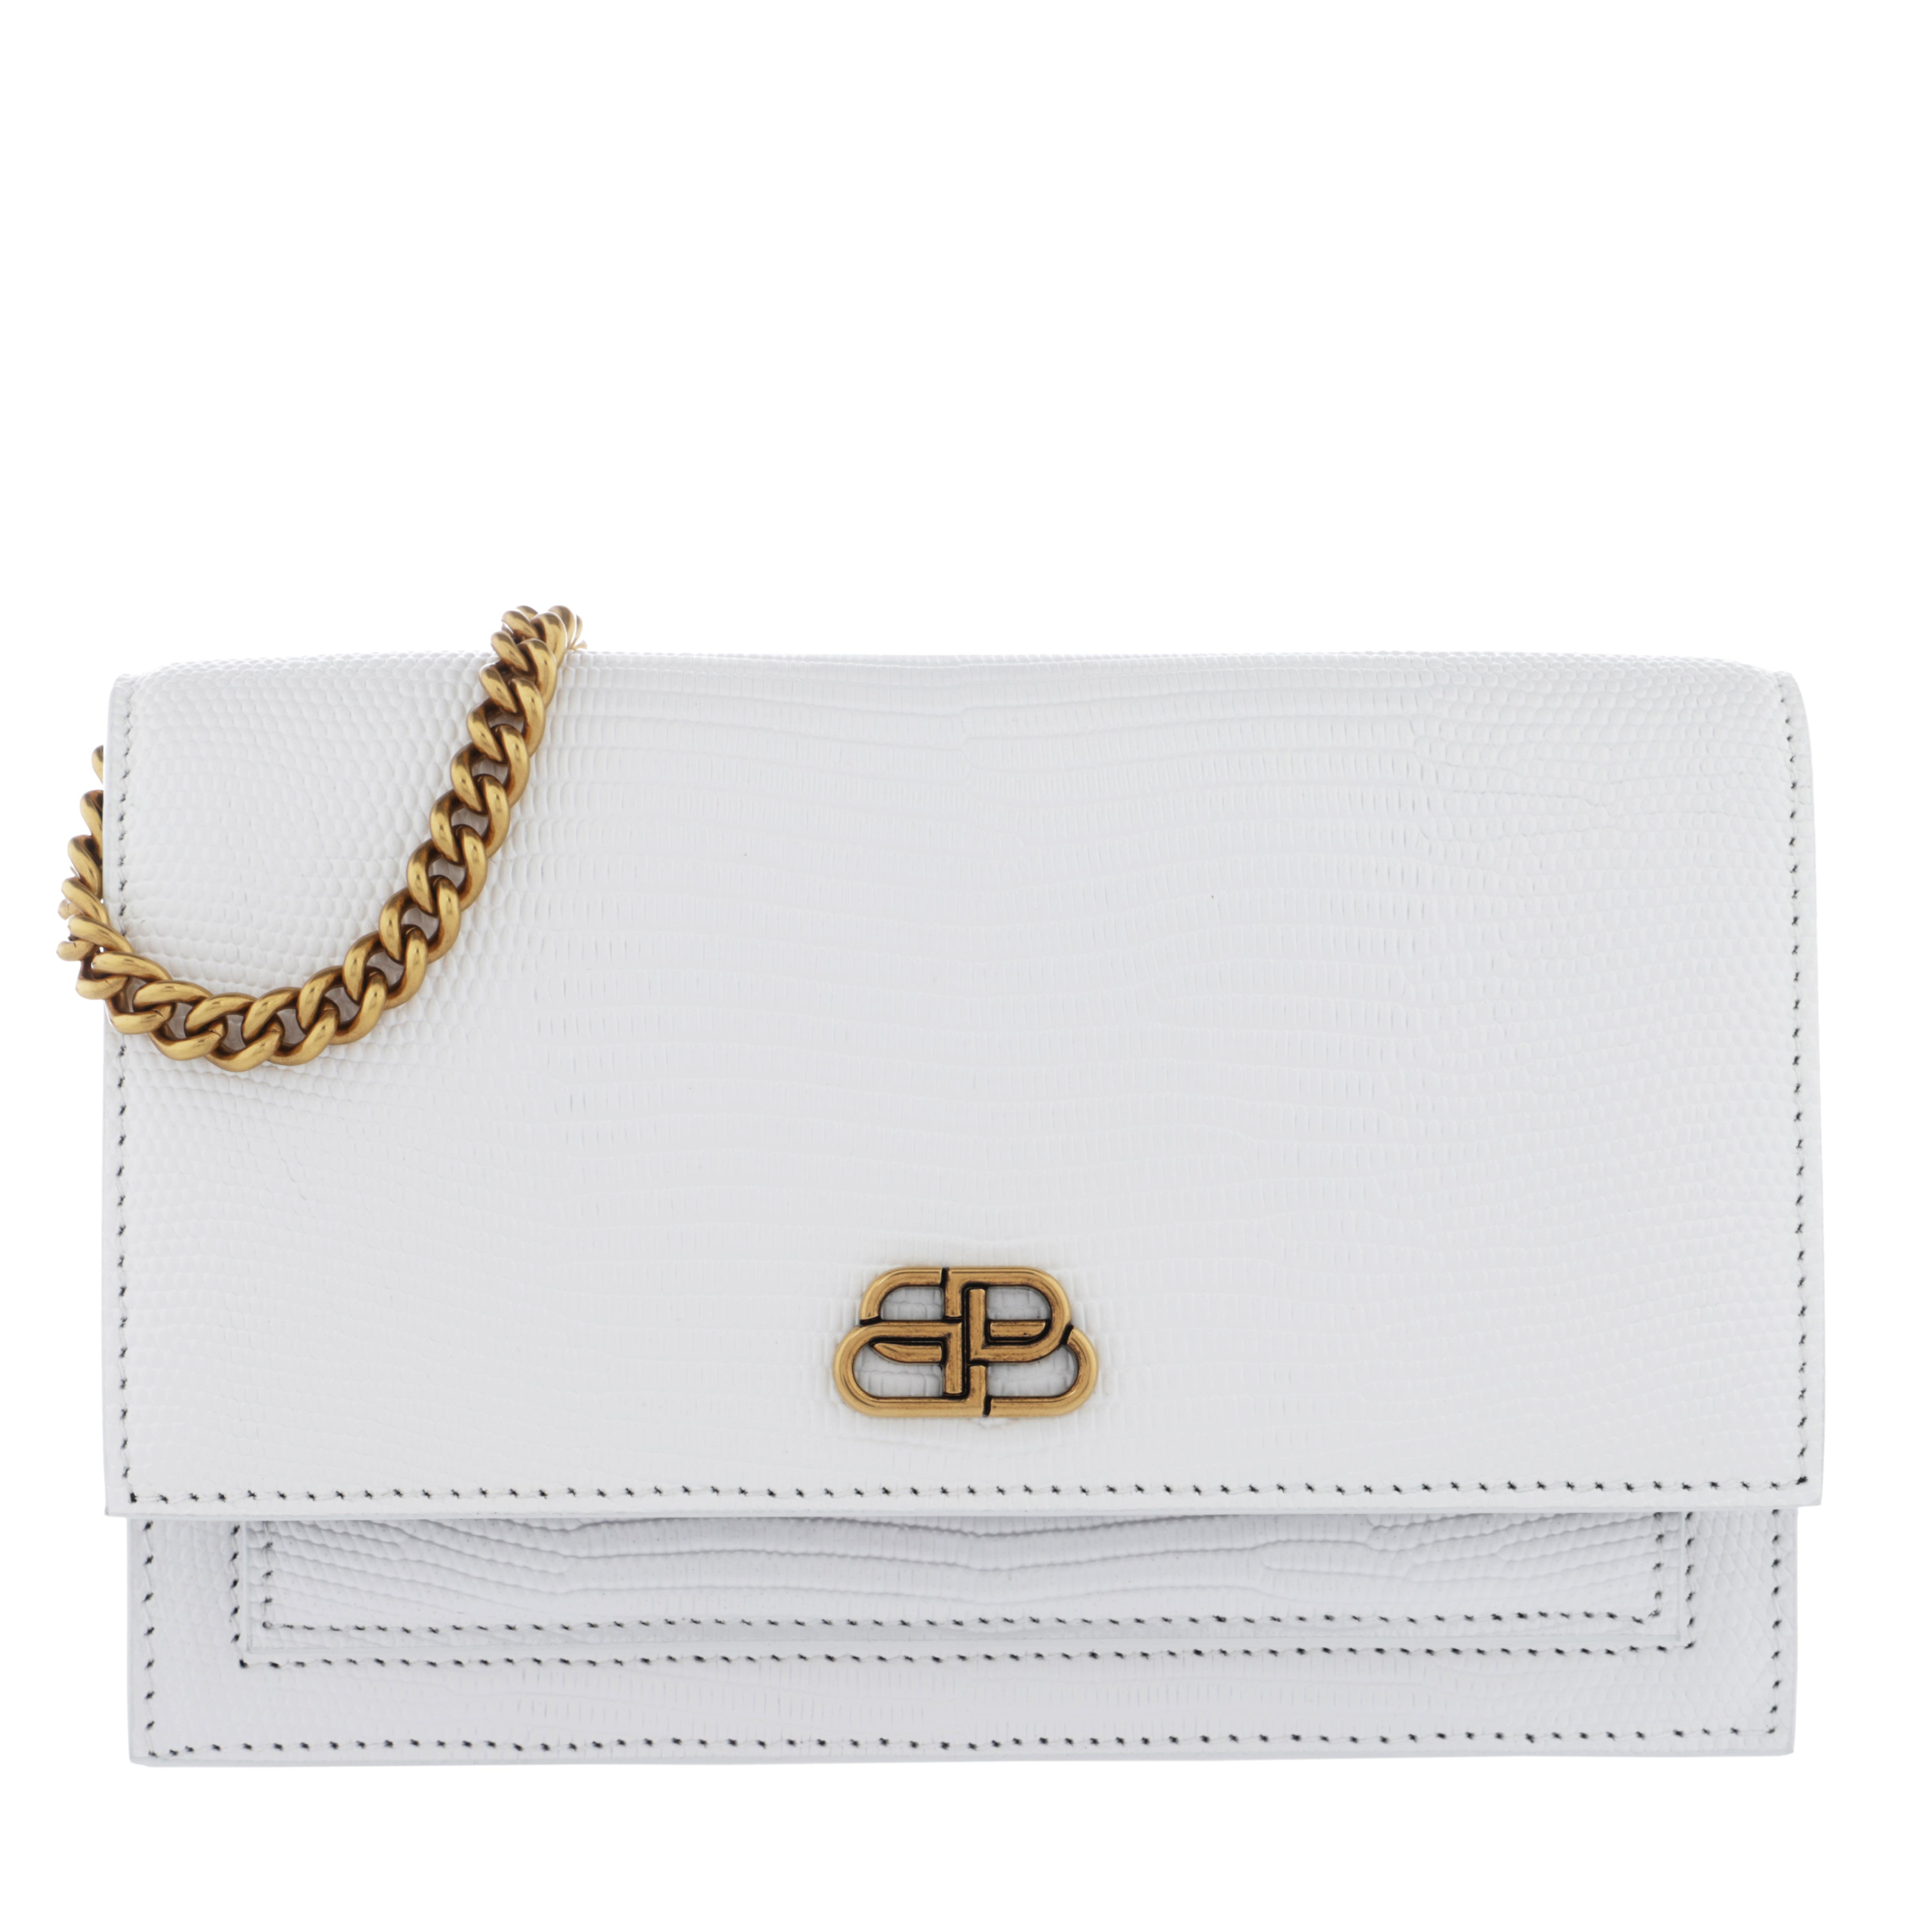 Balenciaga Umhängetasche - Sharp Clutch With Pocket On Chain Leather White - in weiß - für Damen